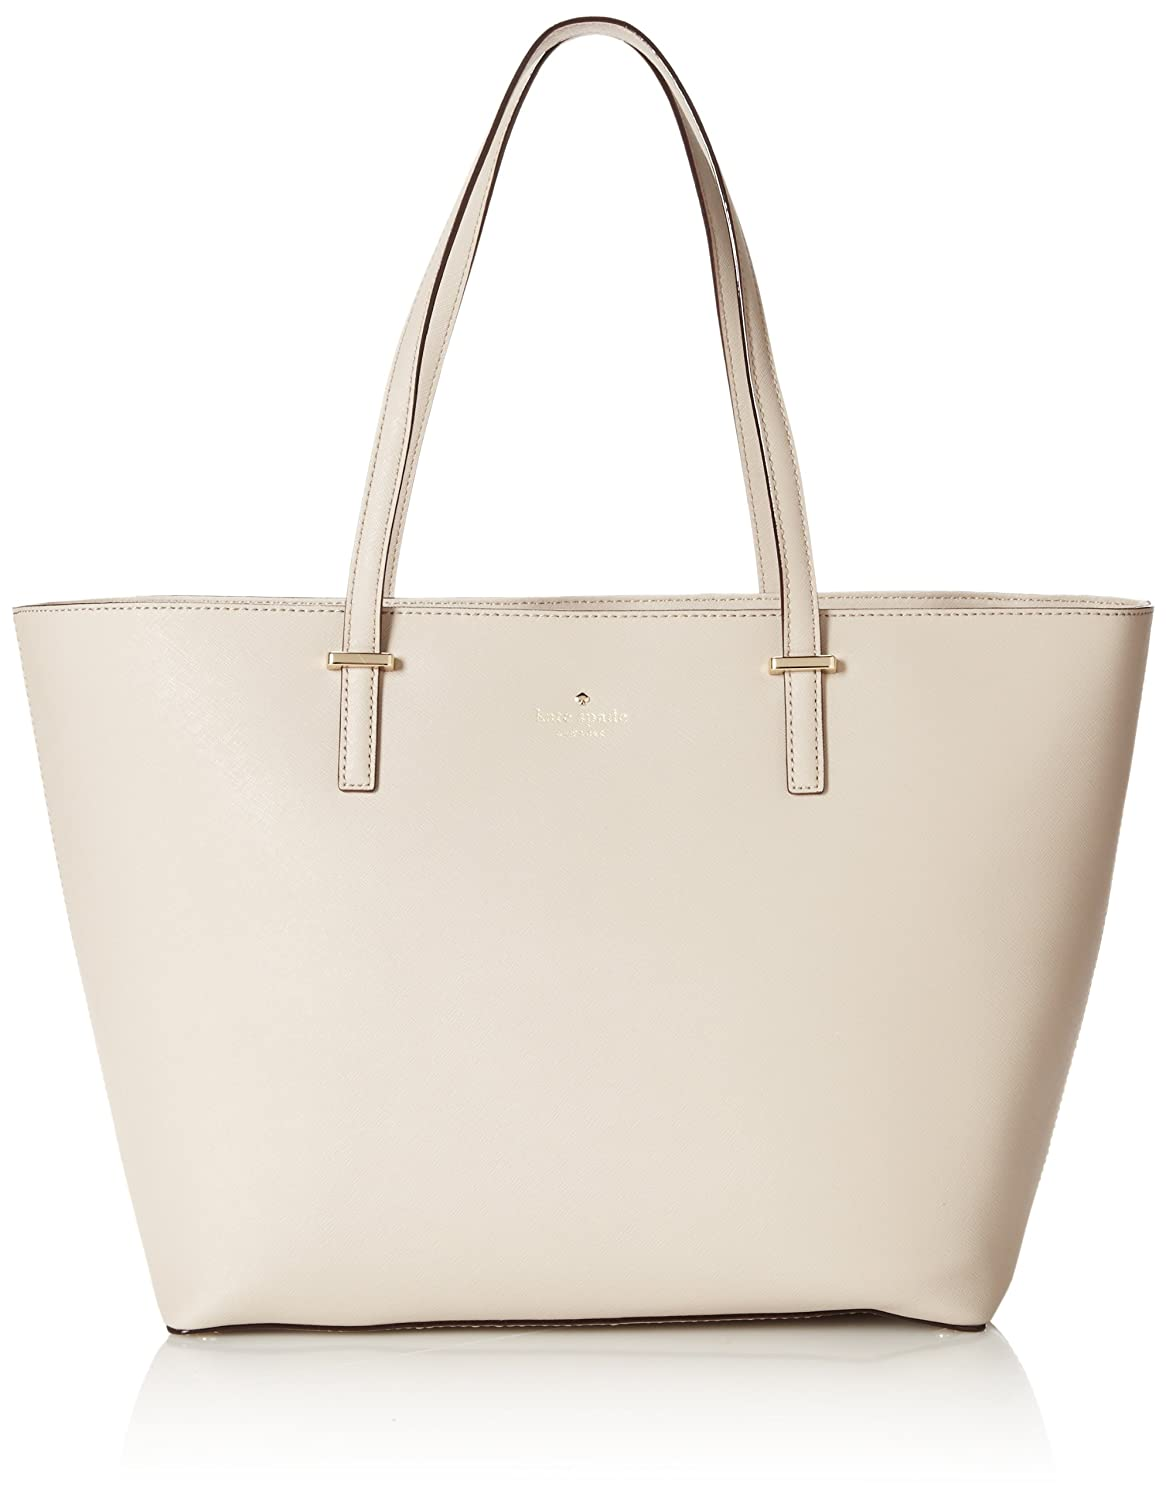 kate spade new york Cedar Street Medium Harmony Shoulder Bag 00_IMHPNSTF_02